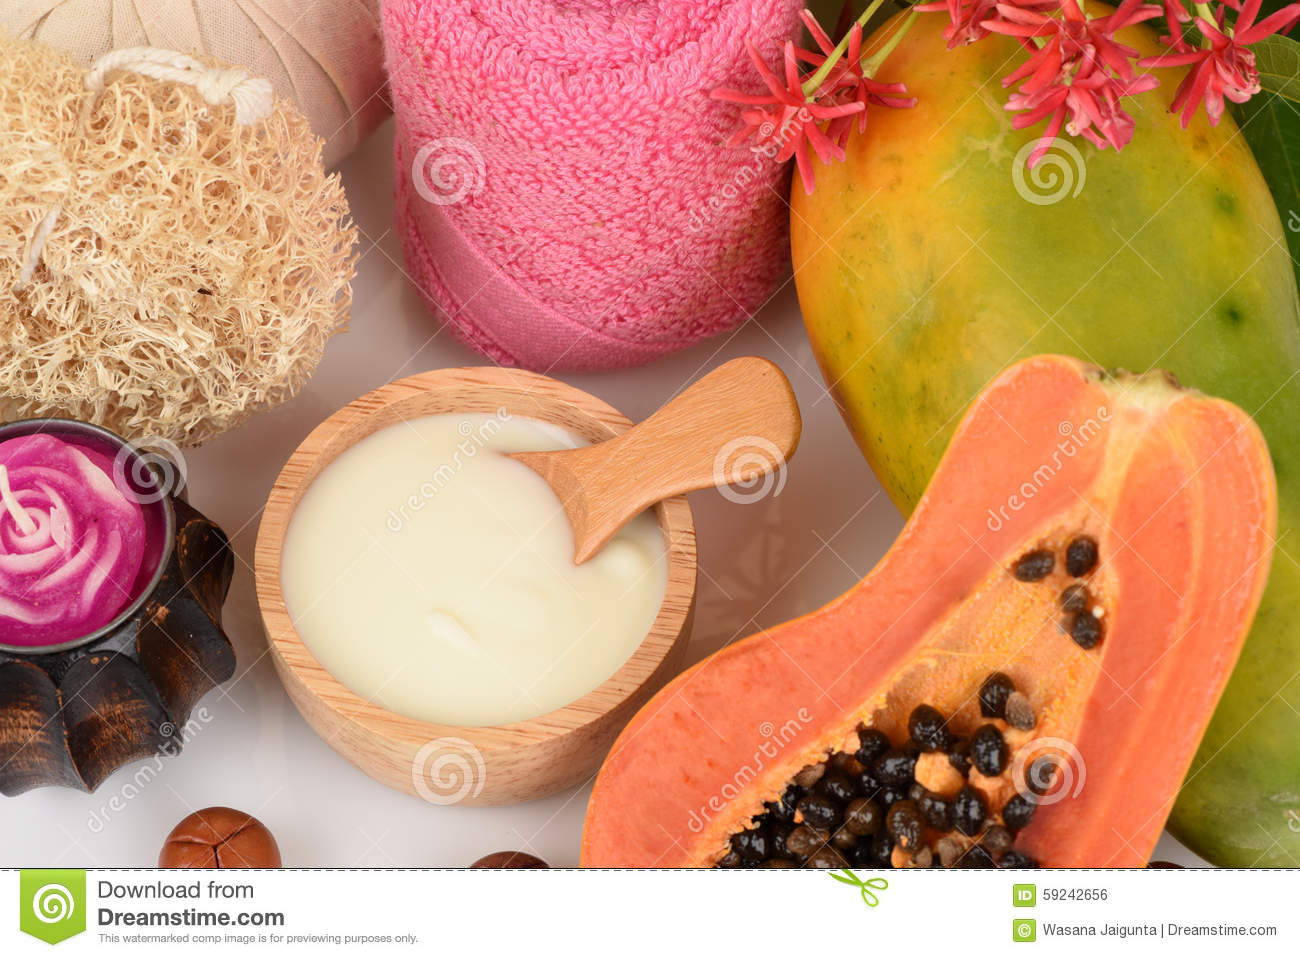 Face mask for acne treatment with Papaya and yogurt.